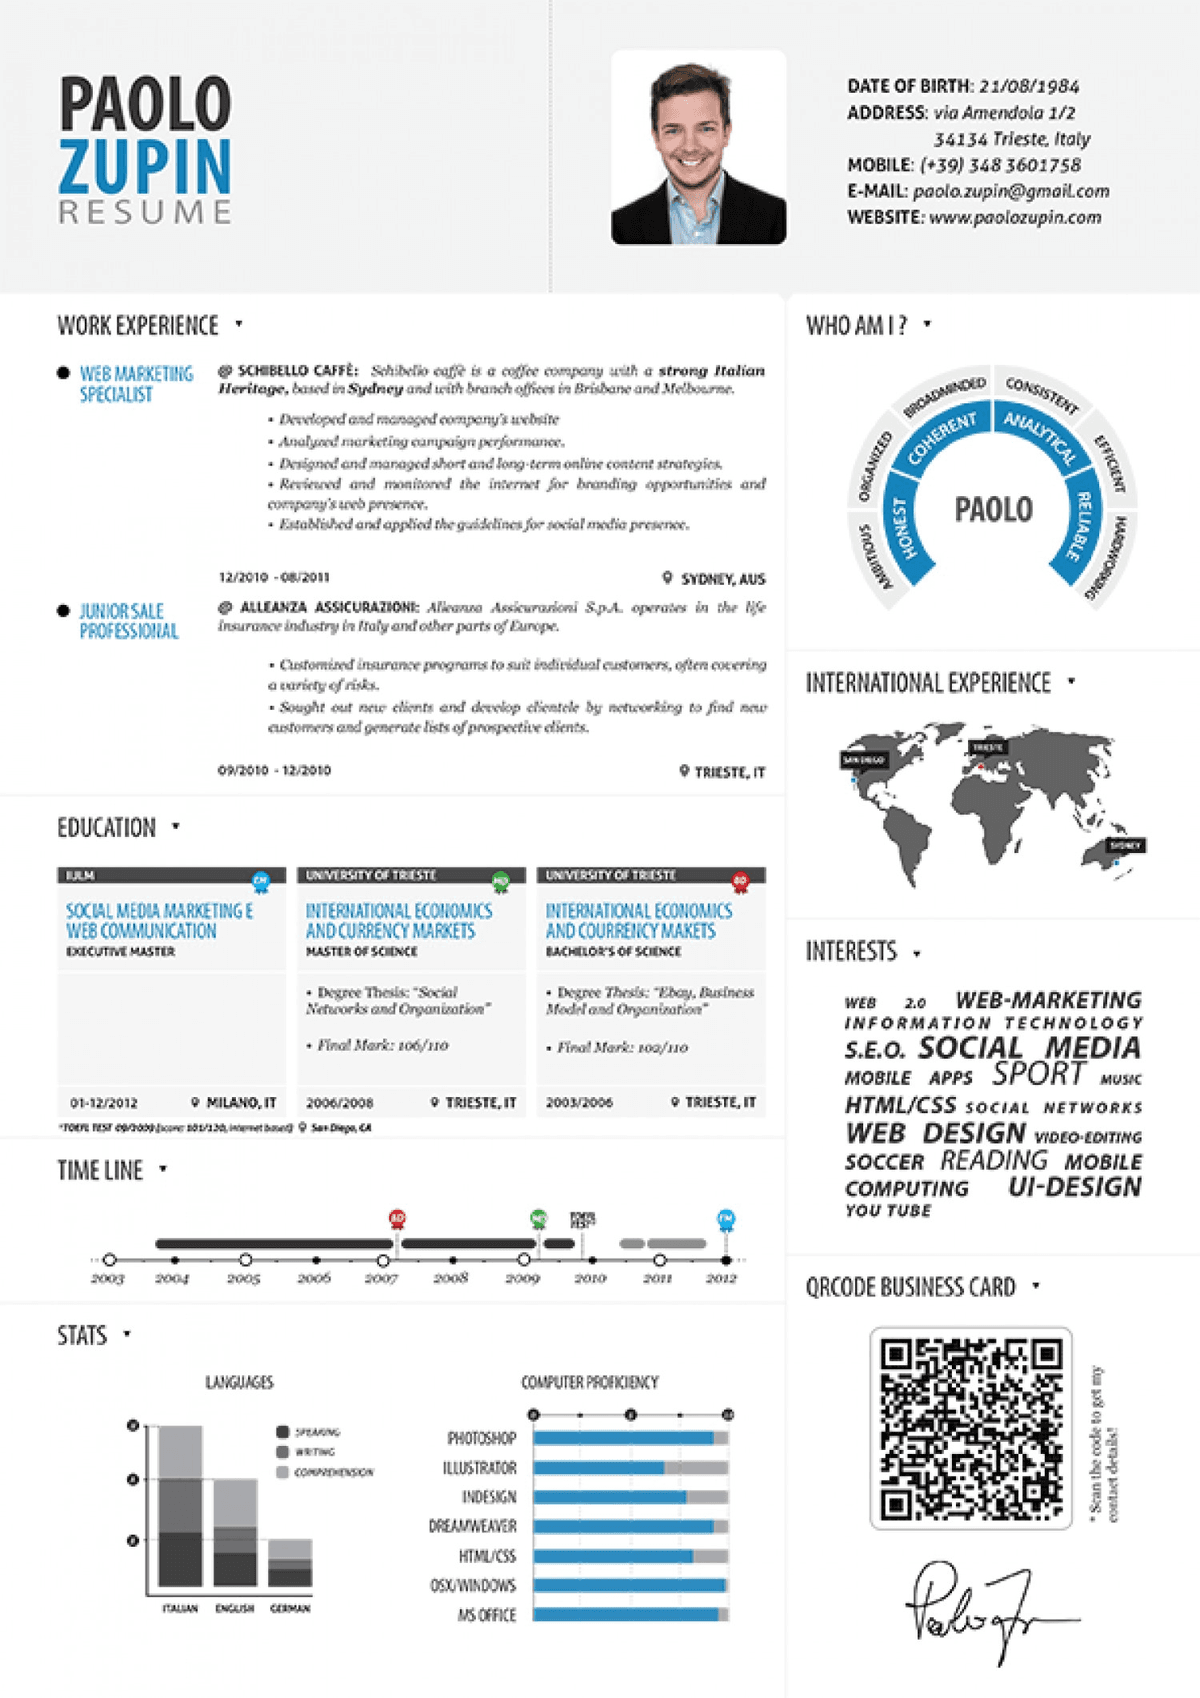 paolo-zupin--infographic-resume_502918c6064e8_w1500